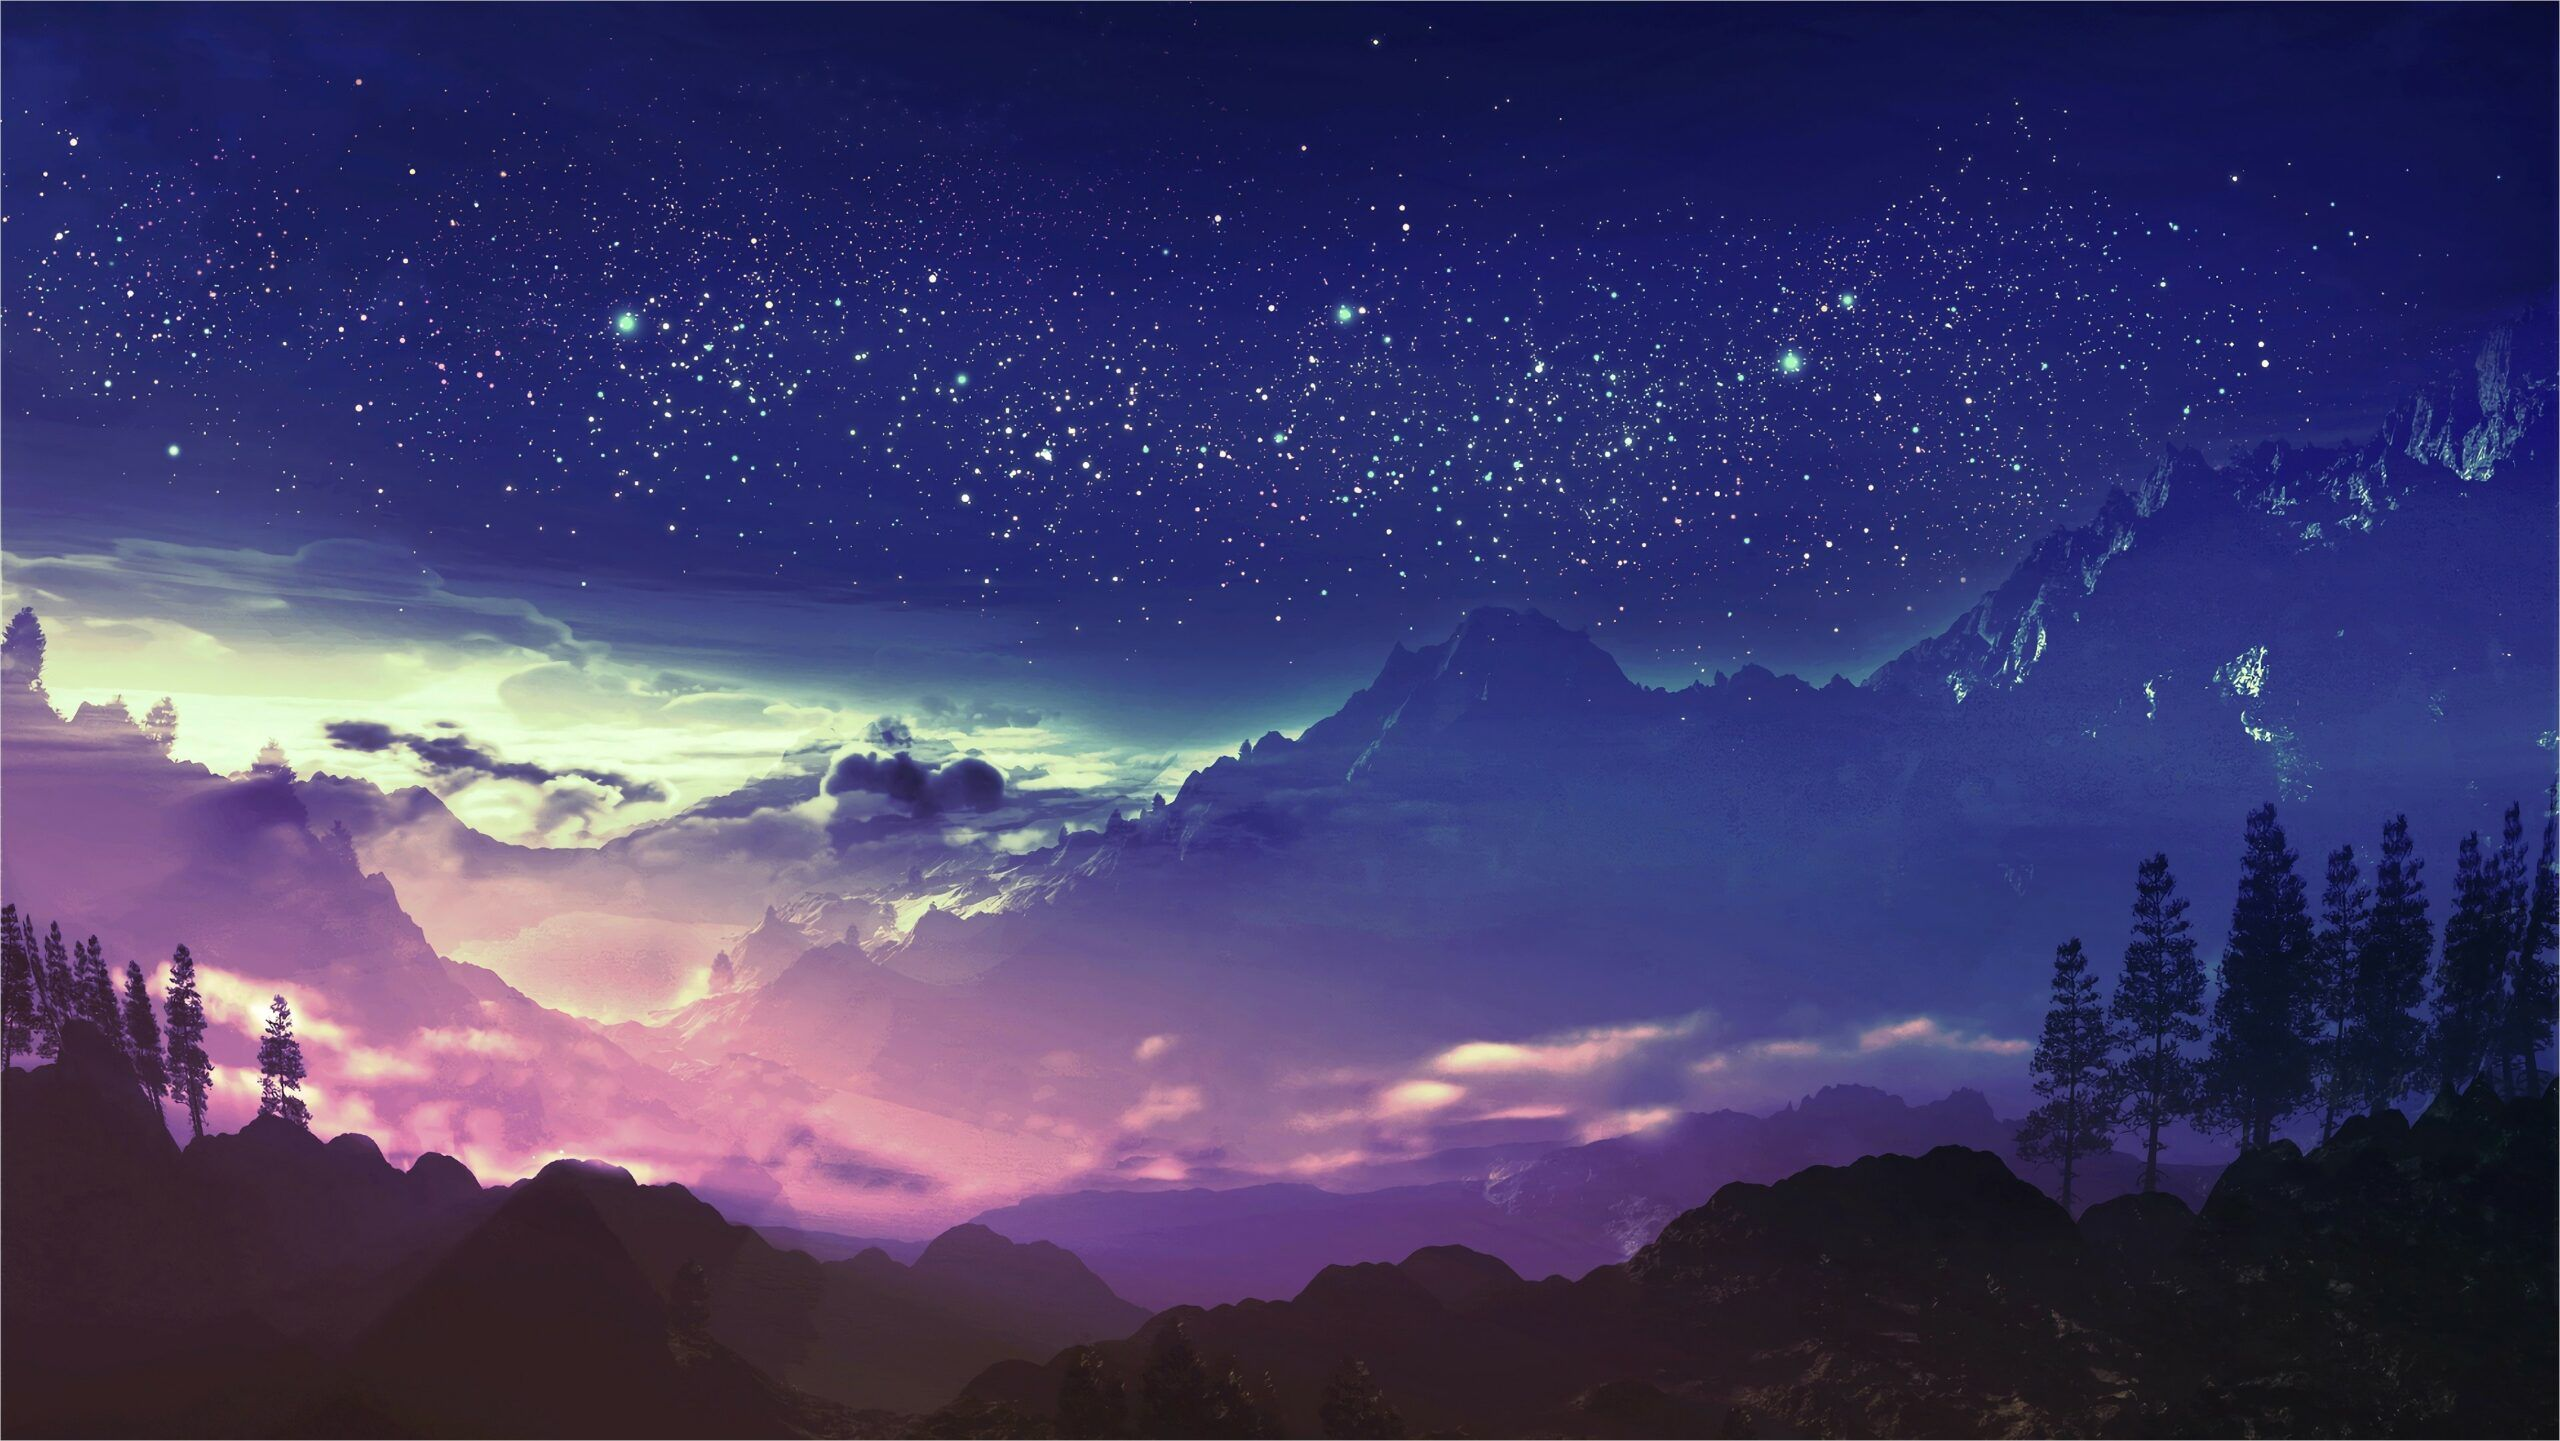 4k Wallpaper Anime Landscape In 2020 Anime Scenery Anime